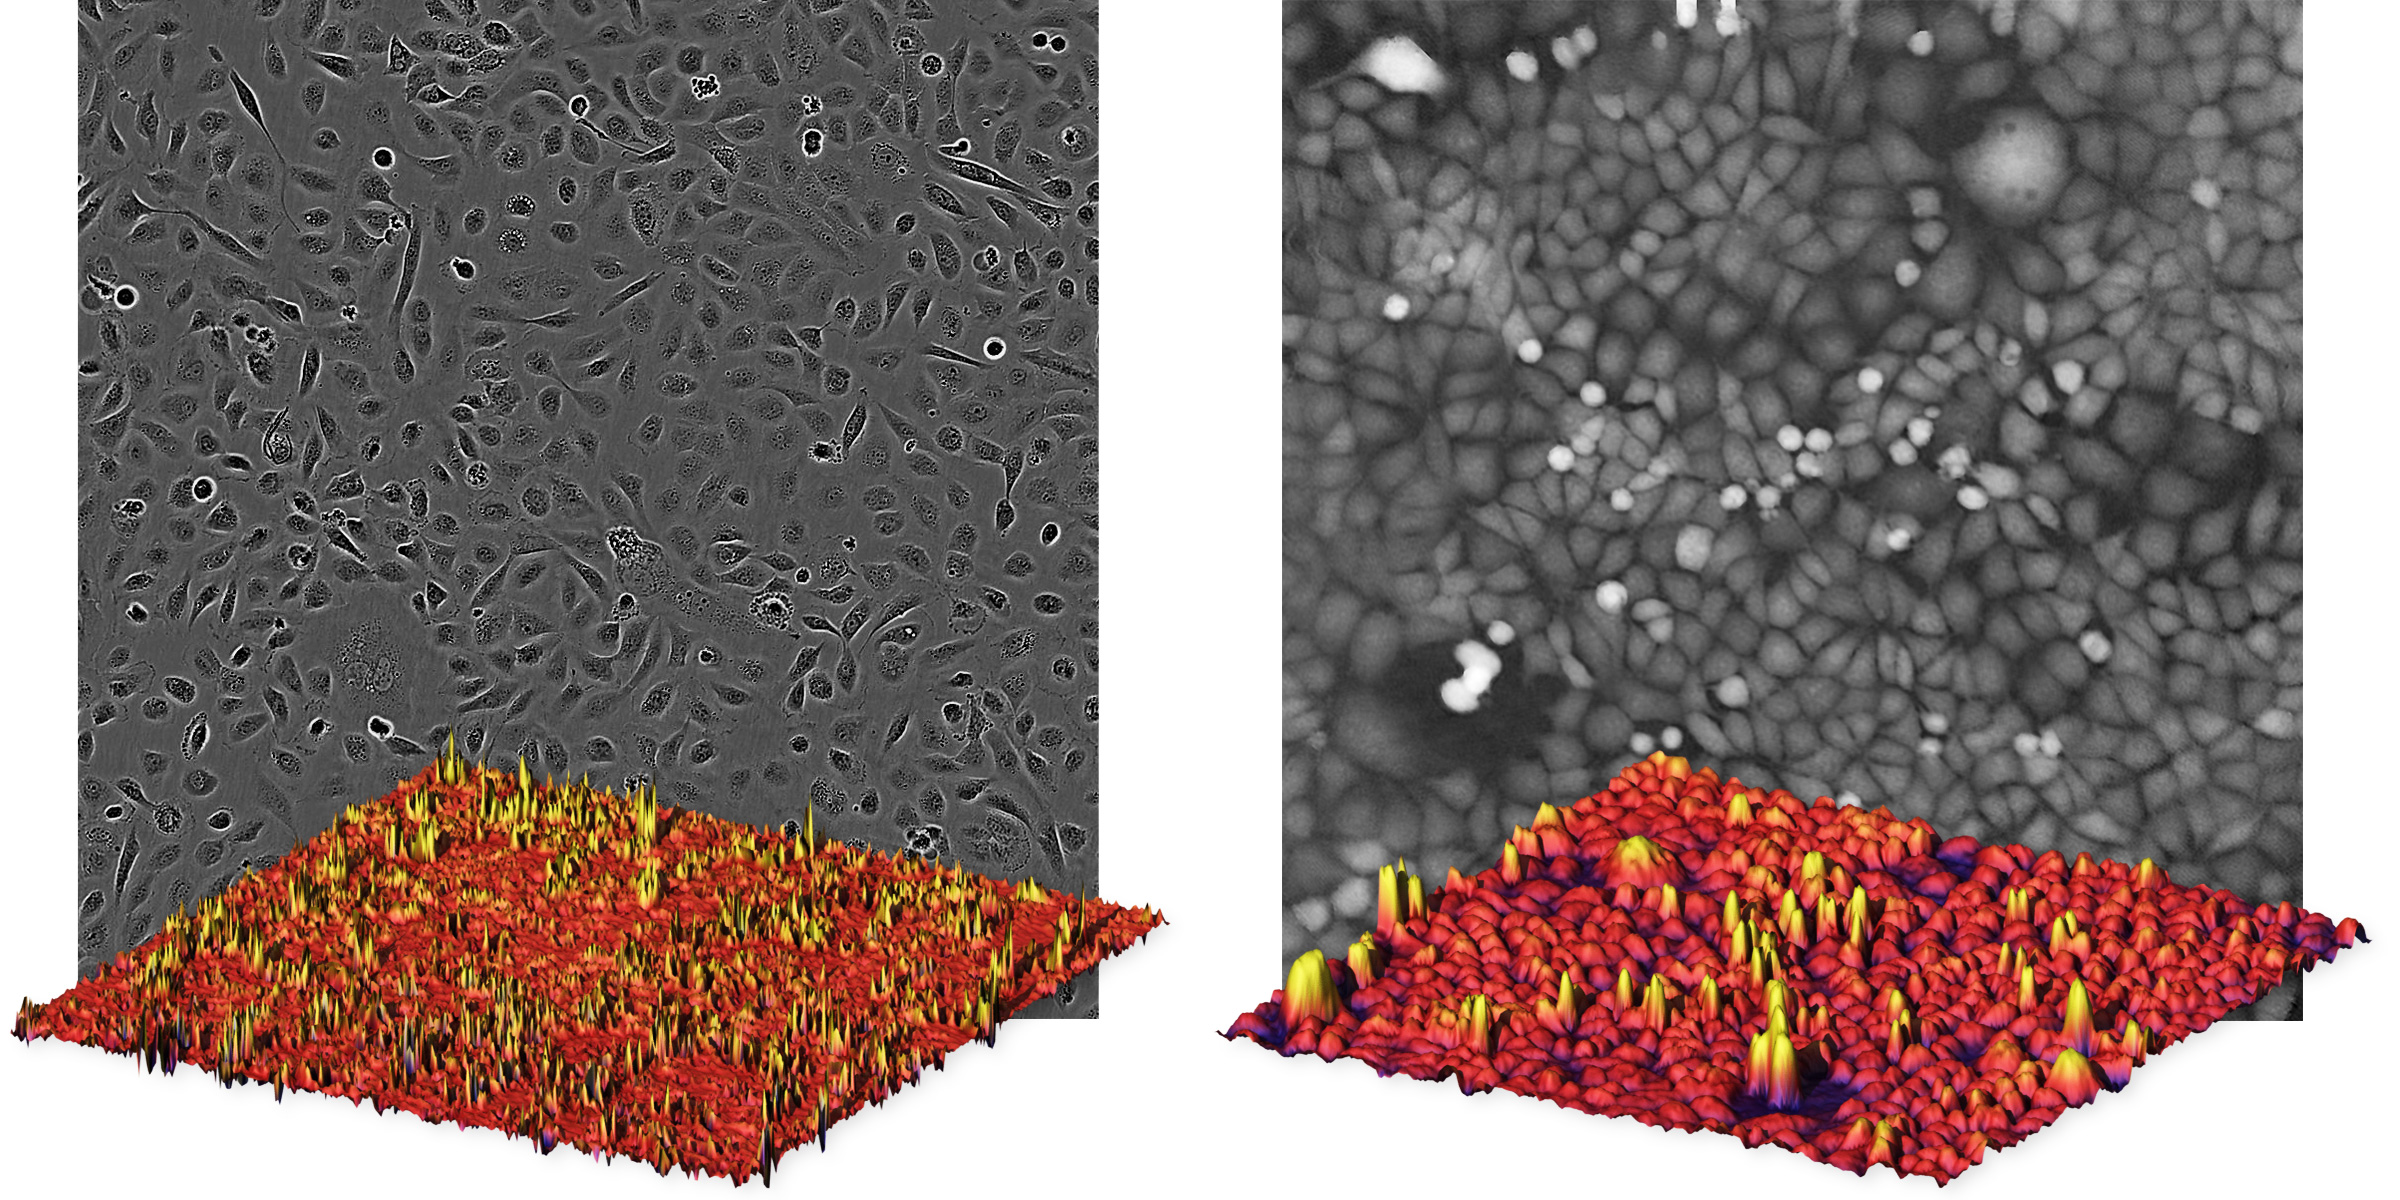 In quantitative phase microscopy images cells appear as peaks